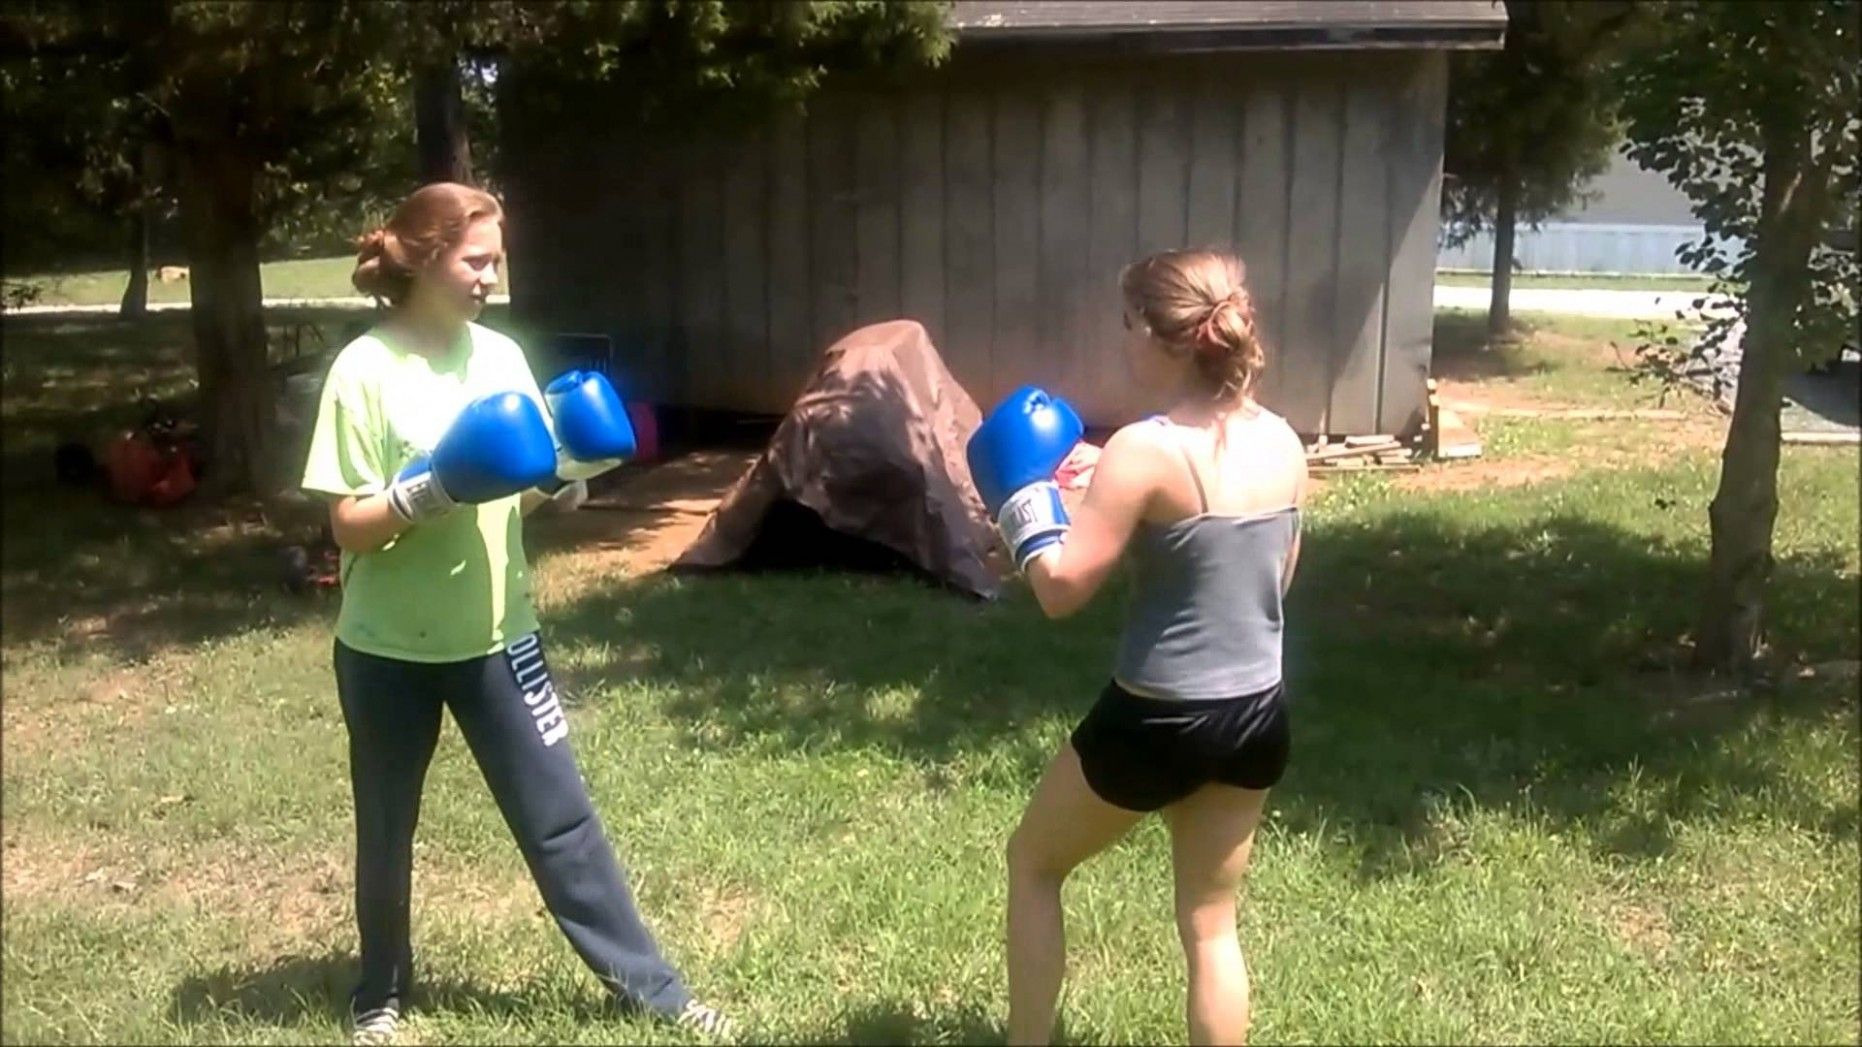 Backyard Boxing image result for backyard boxing | still life with rocket in 2018